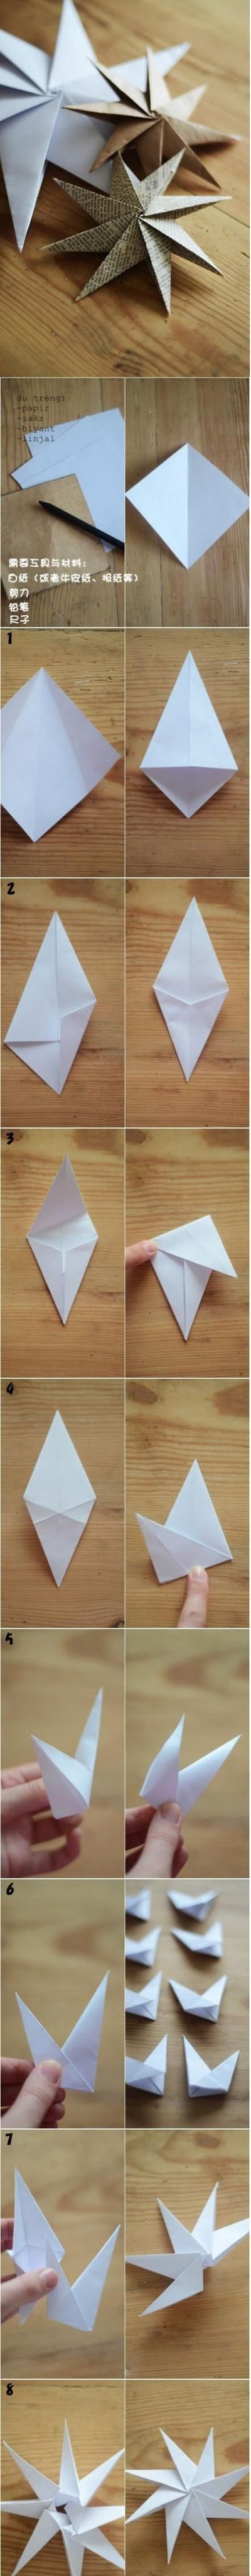 another paper star